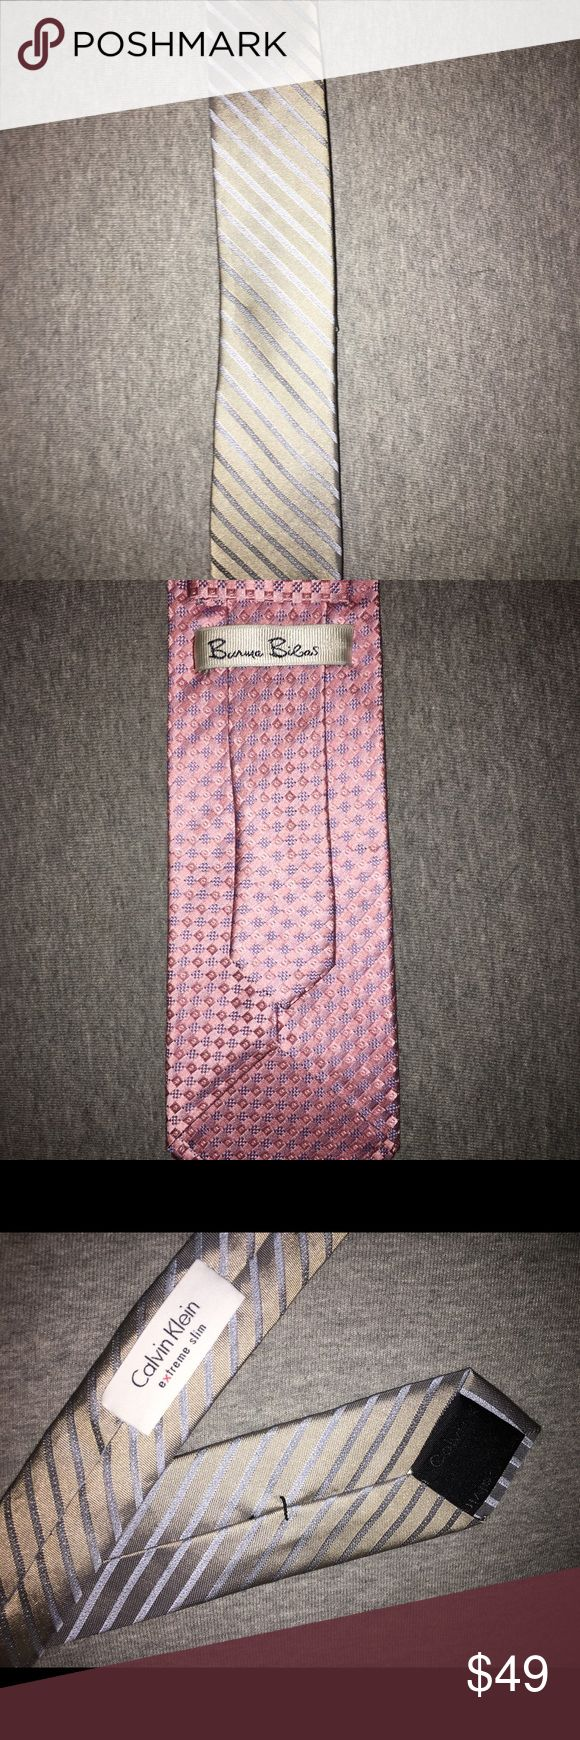 2 ties Calvin Klein slim and Ben Sherman NWOT both are Perfect and included in price Ben Sherman Other